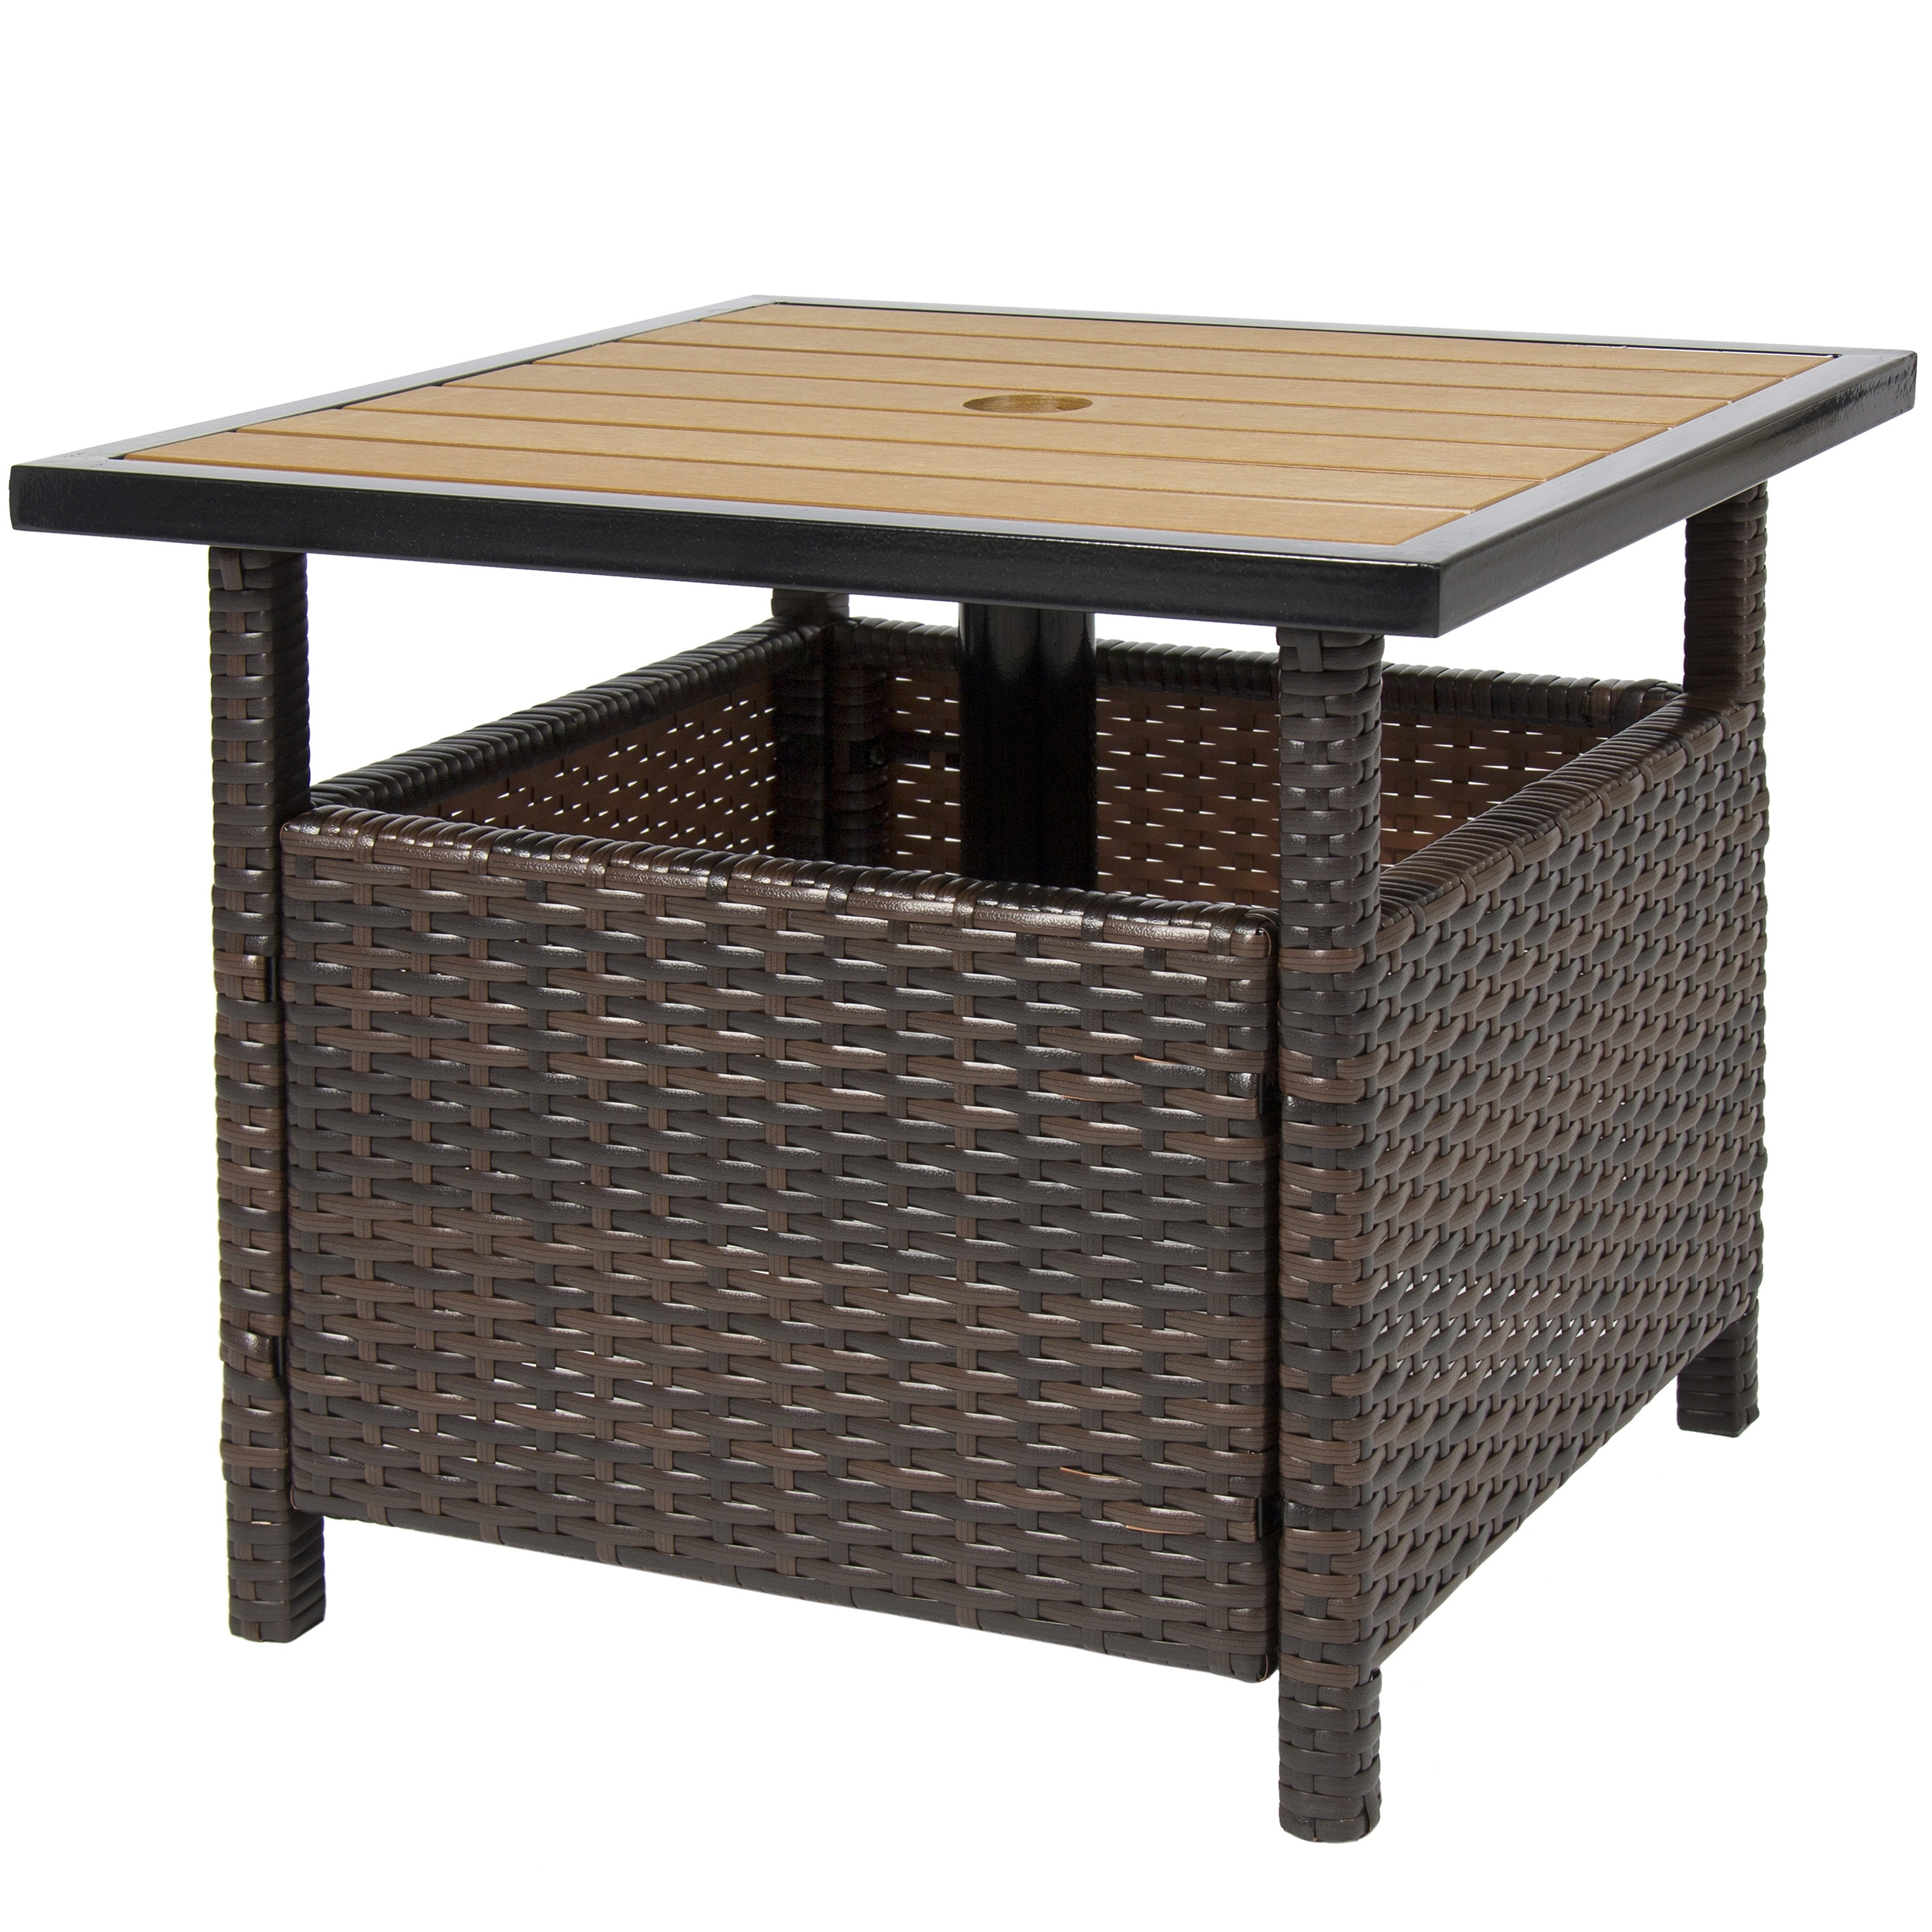 Best Choice Products Outdoor Furniture Wicker Rattan Patio Umbrella Pertaining To Latest Patio Umbrella Stand Side Tables (View 5 of 20)